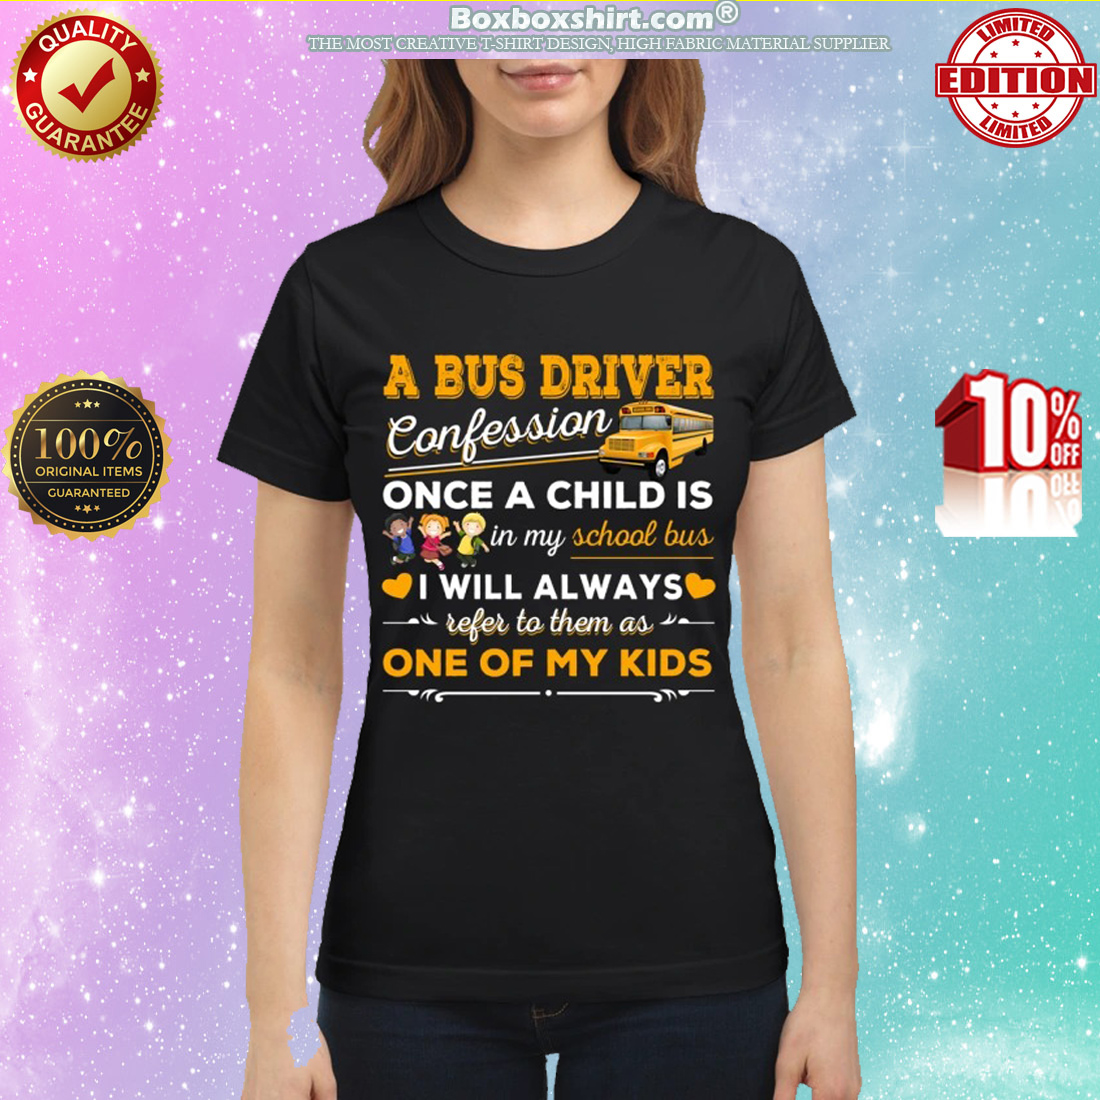 A bus driver confession once a child is in my school bus classic shirt